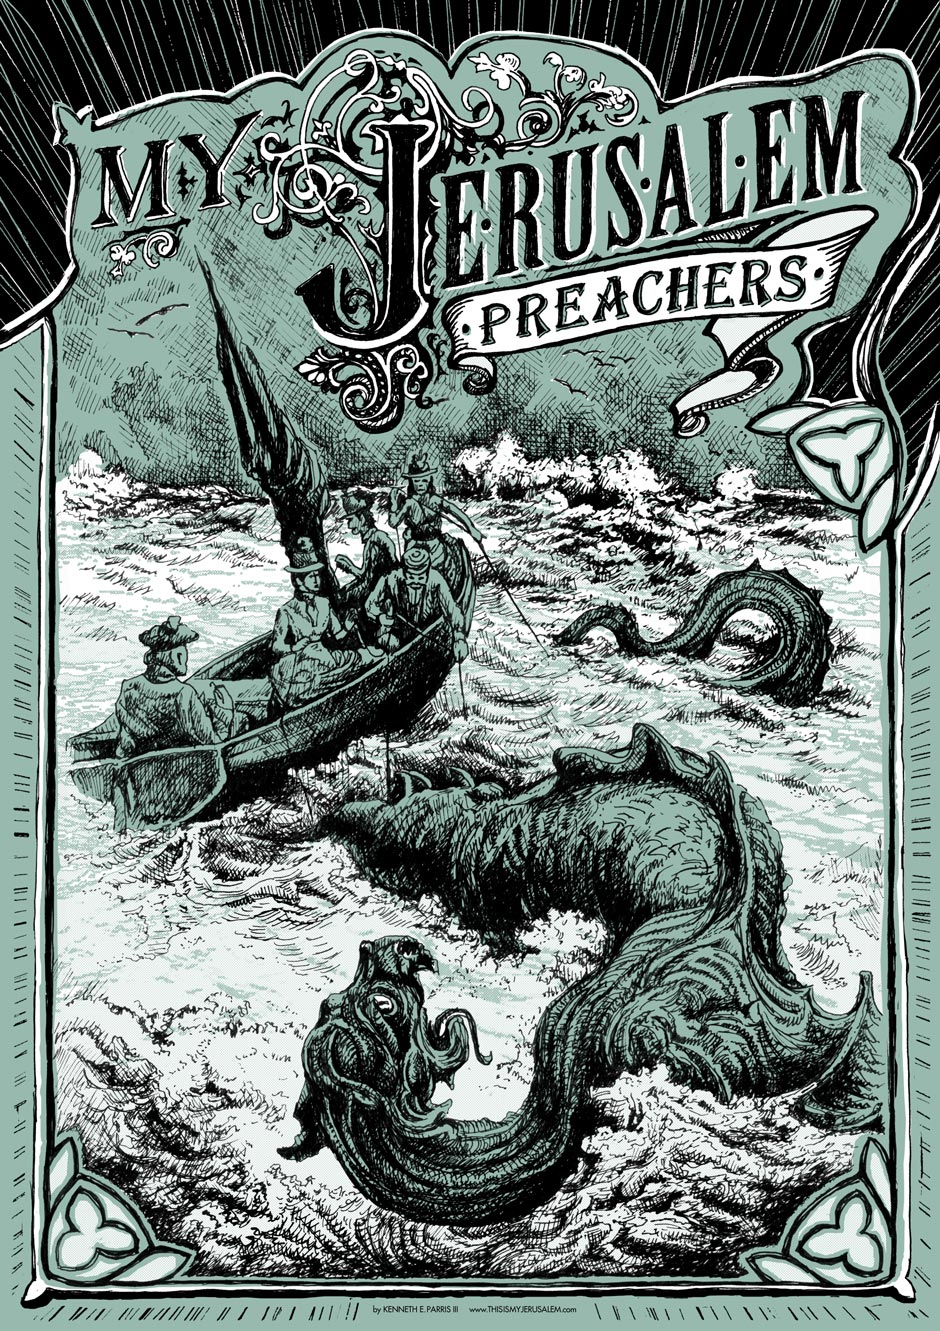 """Limited edition silk-screened """"Preachers"""" sea monster poster"""